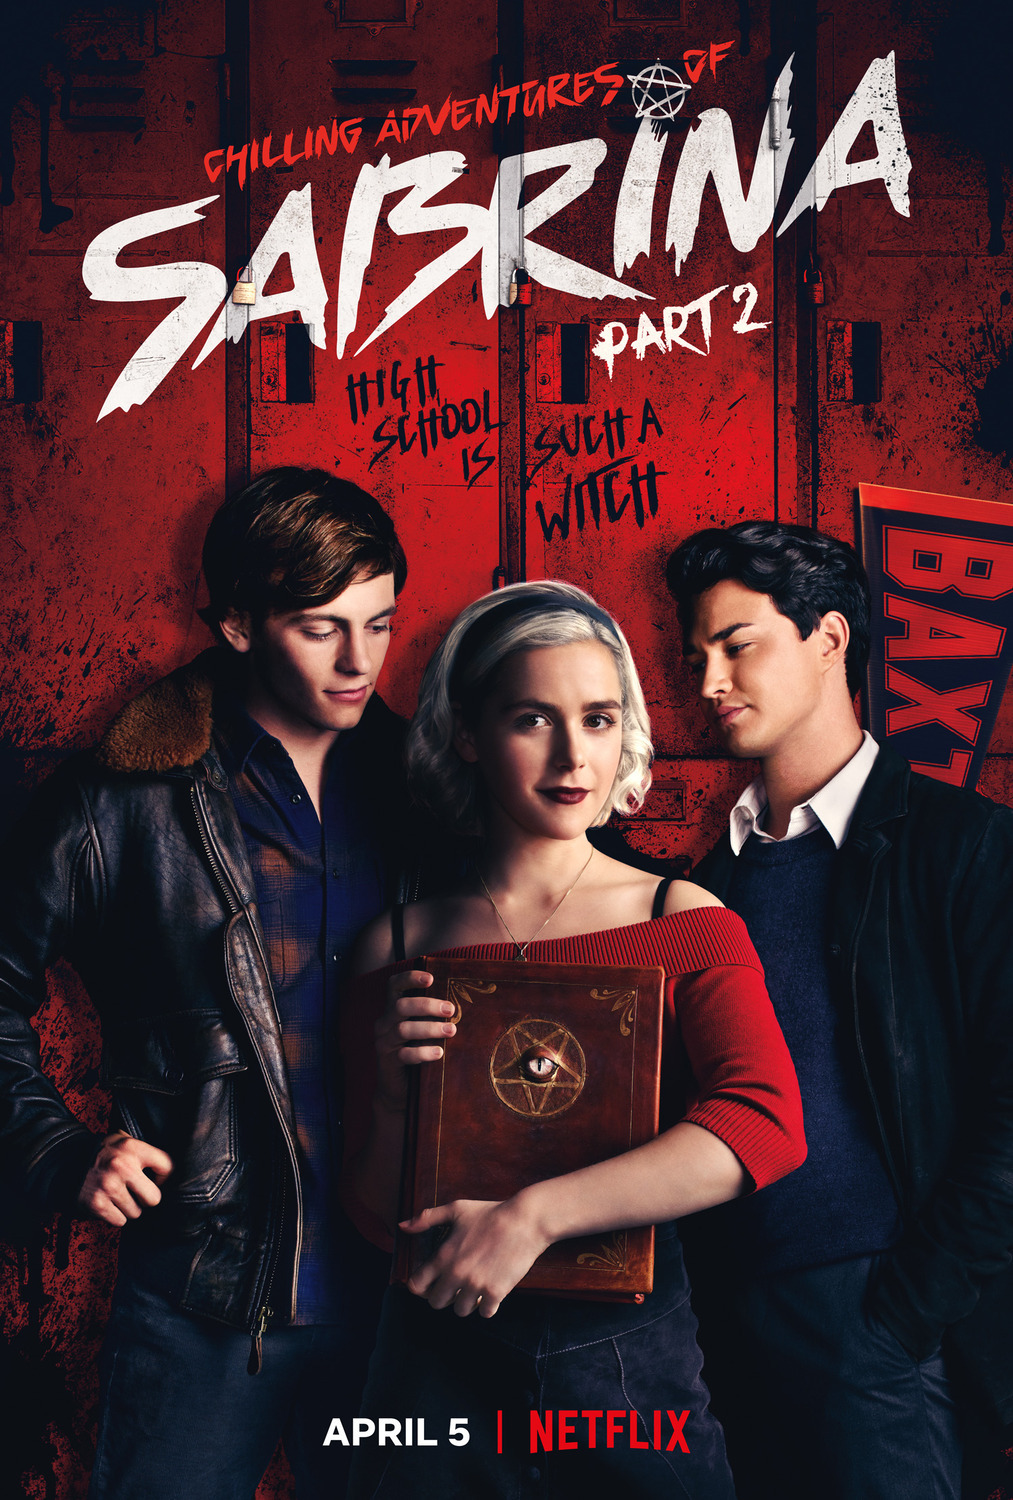 Chilling Adventures of Sabrina (2019) S02 Complete – [Hindi+English] – 720p NF.WEB-DL x264 AAC